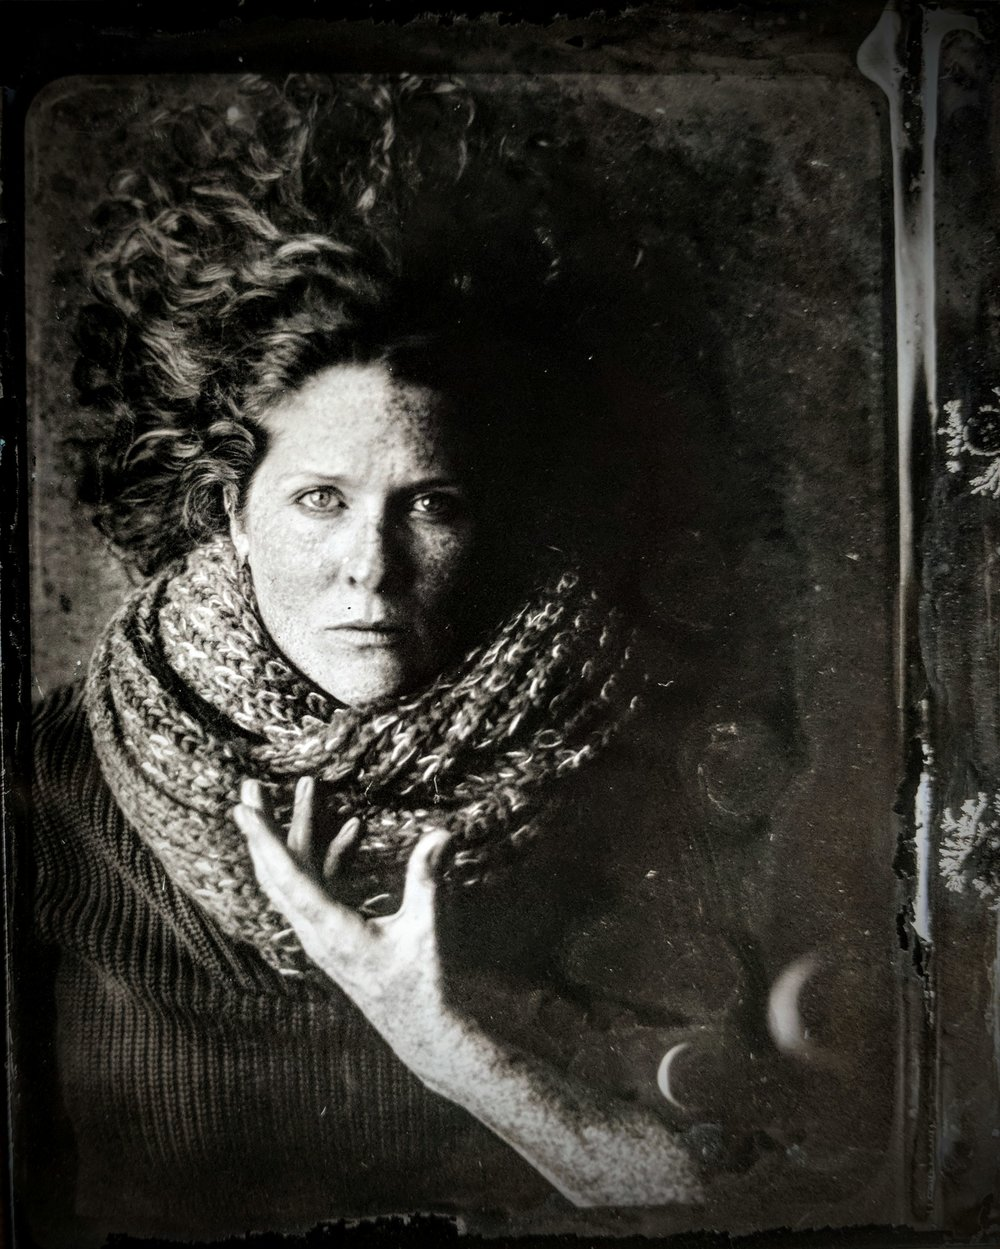 photograph by Daniel Thompson as part of WET PLATE COLLODION TINTYPES, summer 2017